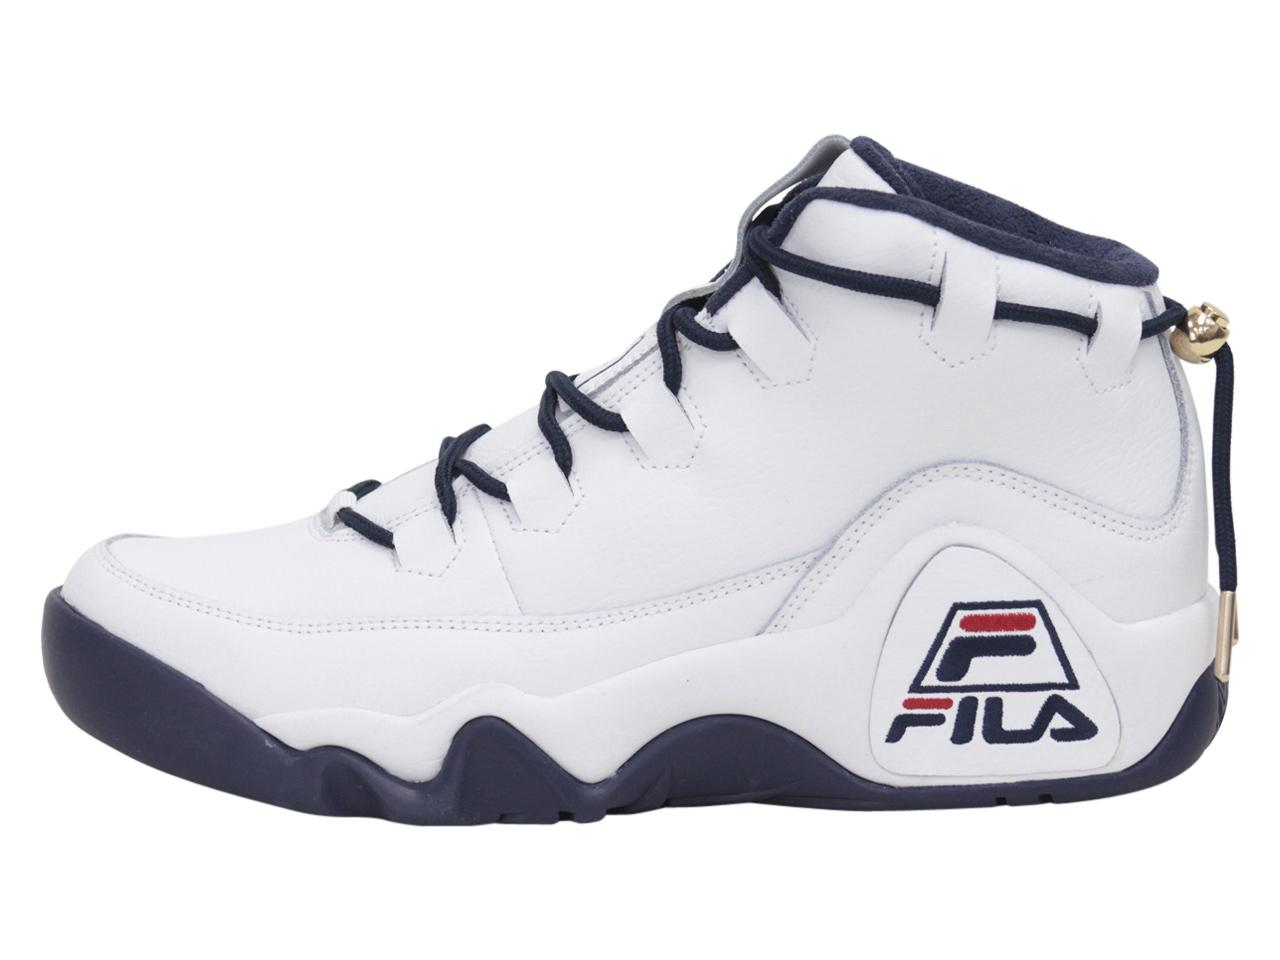 Fila Men's 95-Primo Sneakers Shoes